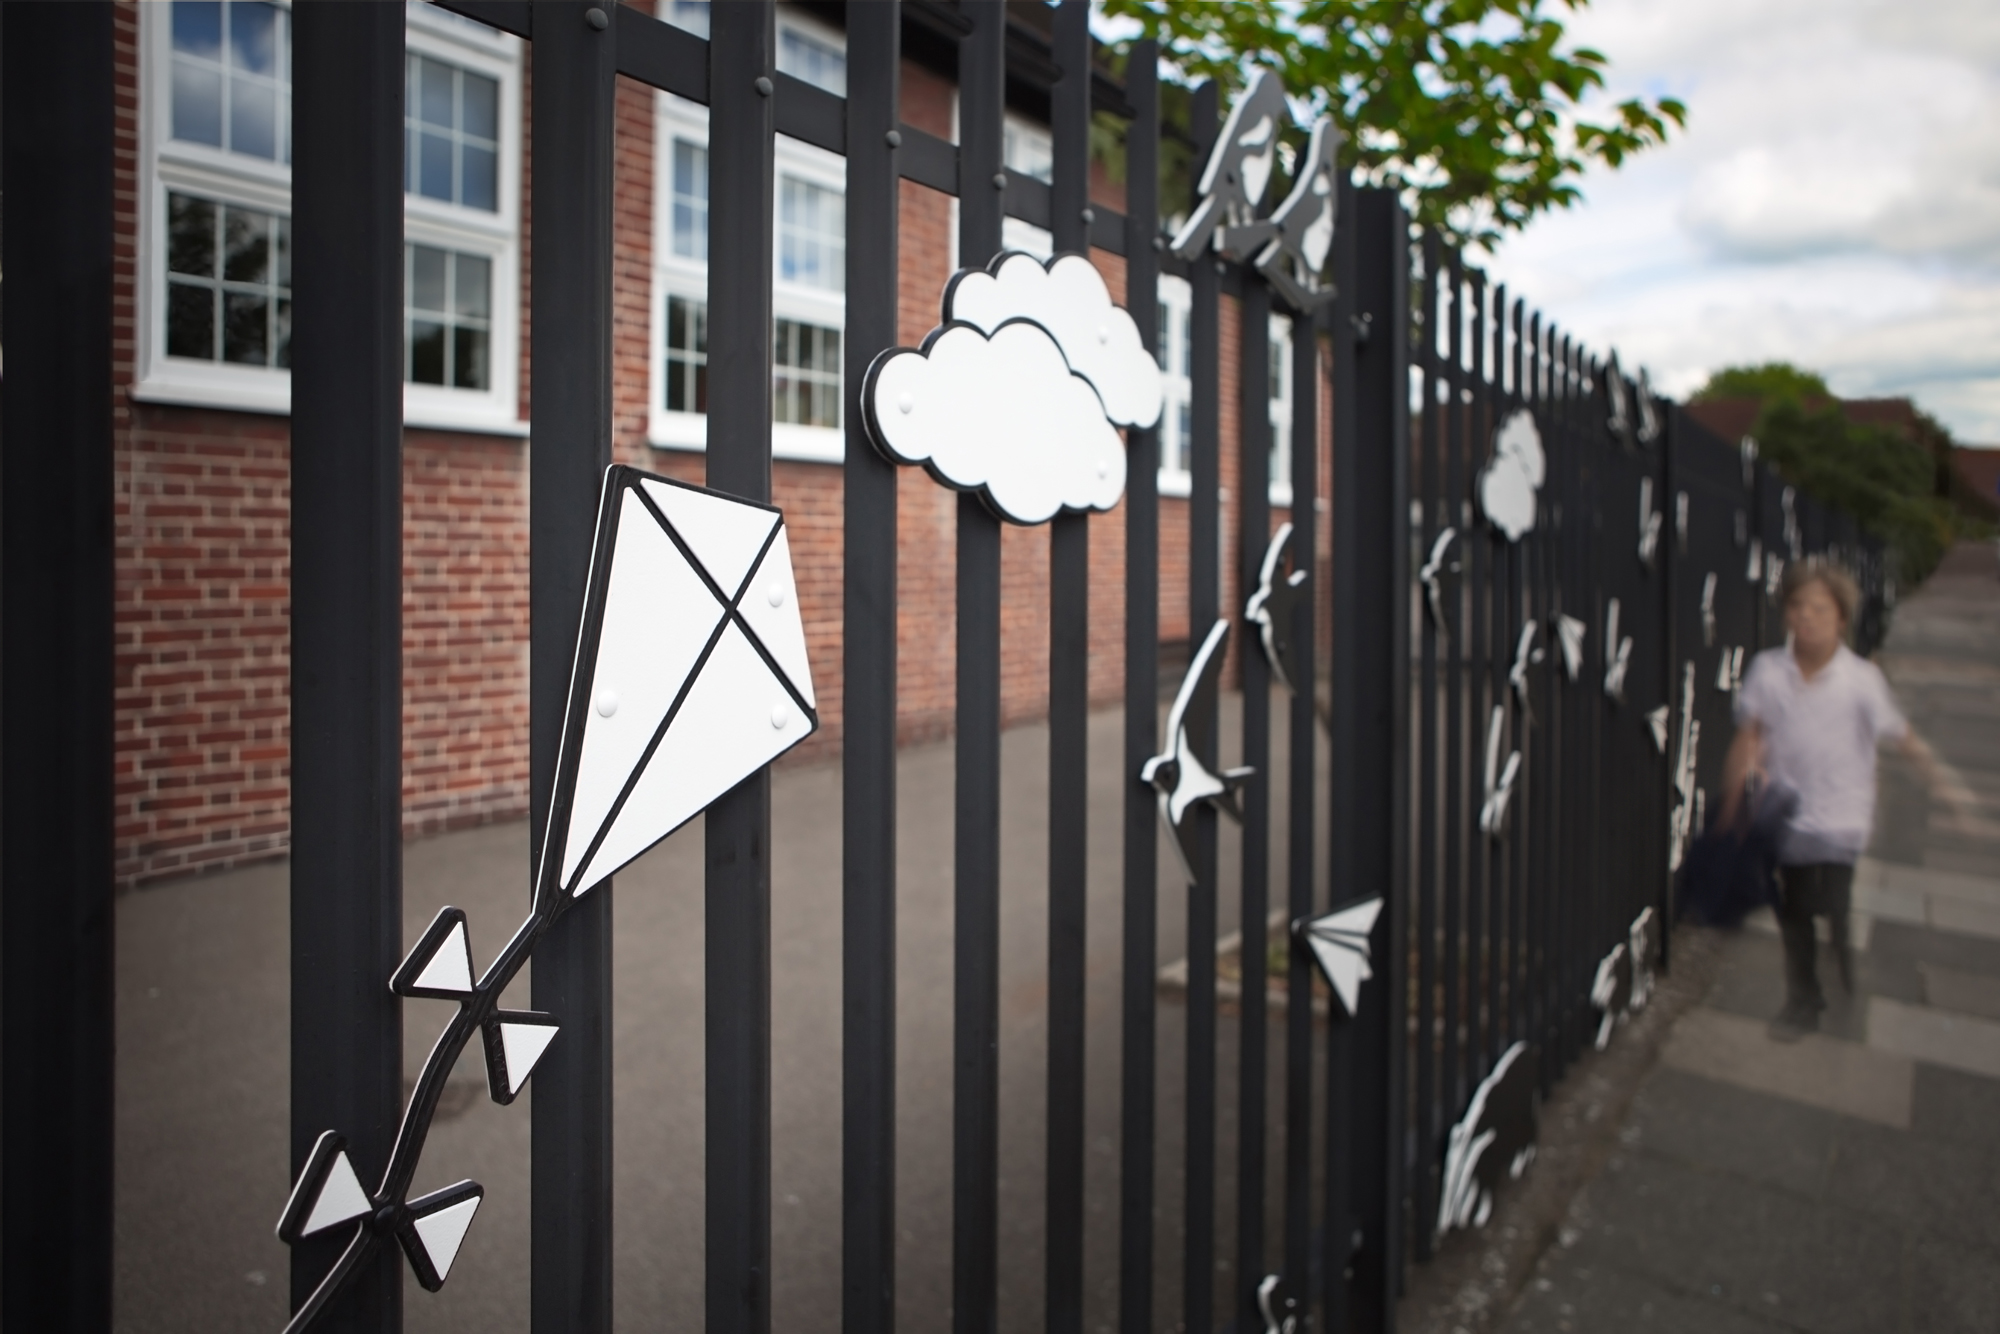 Detail of Cromer Road Primary School railings.